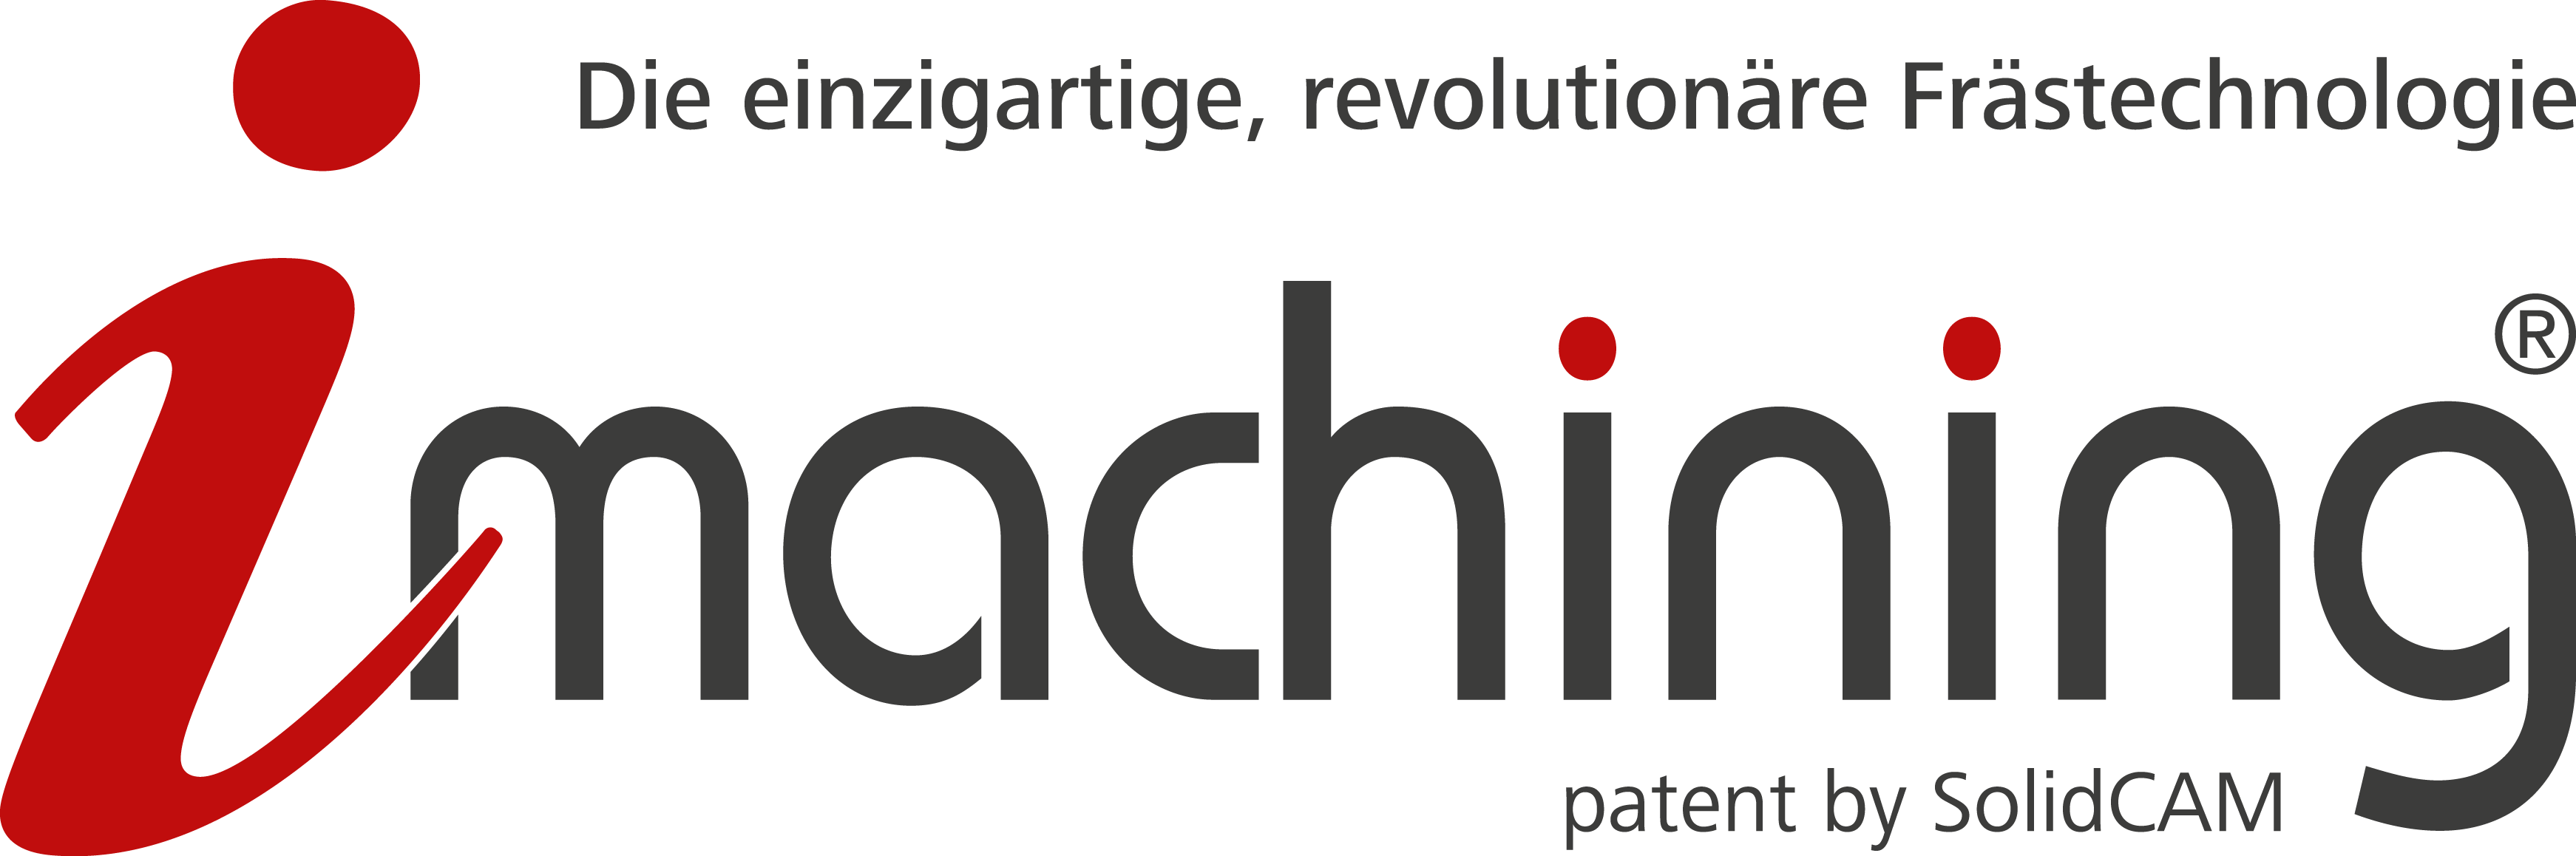 iMachining logo DE registered patent